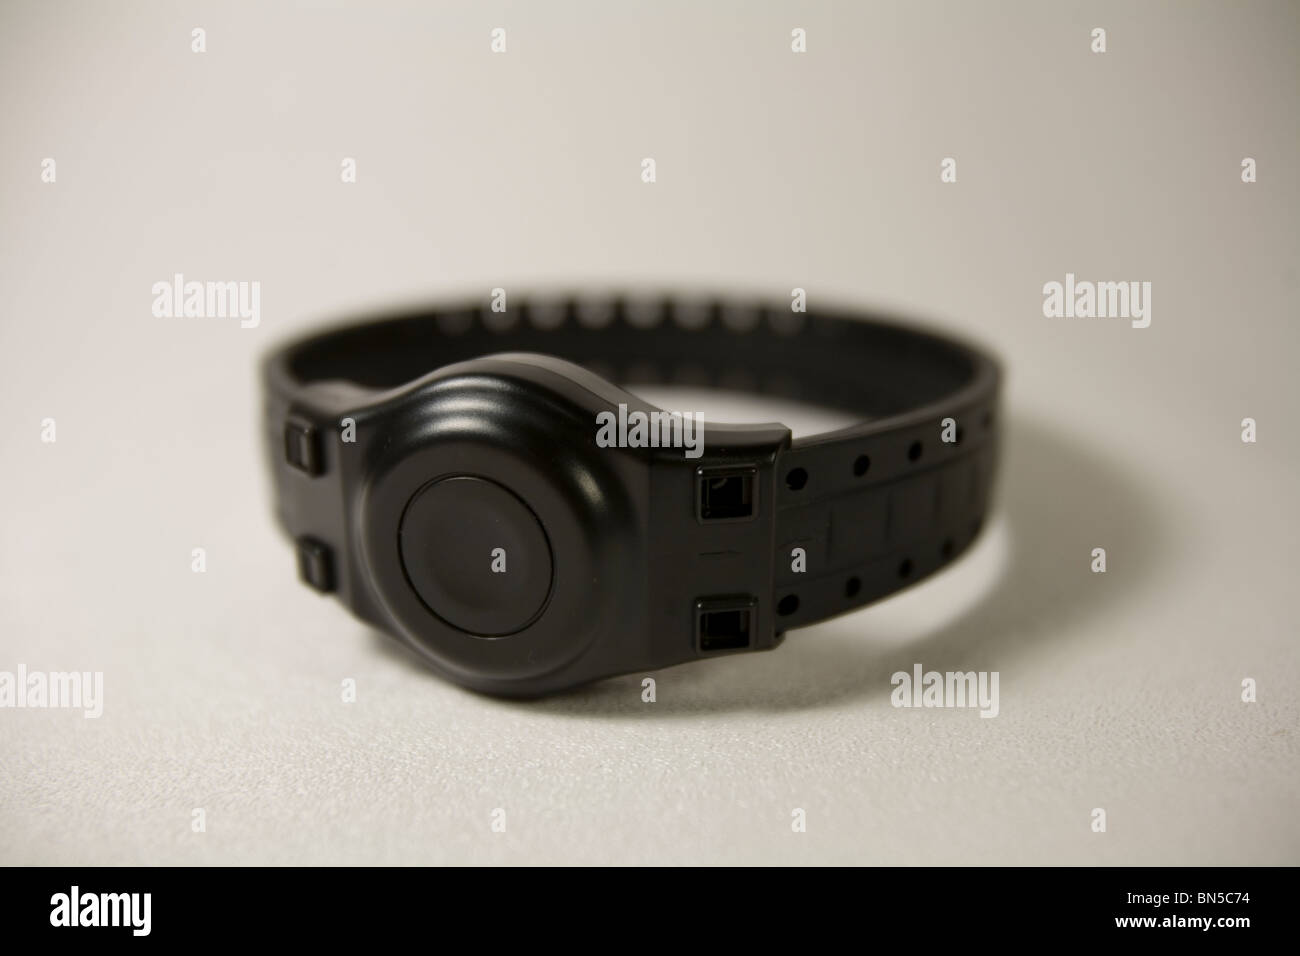 bracelet electronic monitoring monitors defendants ankle watch wear of hundreds